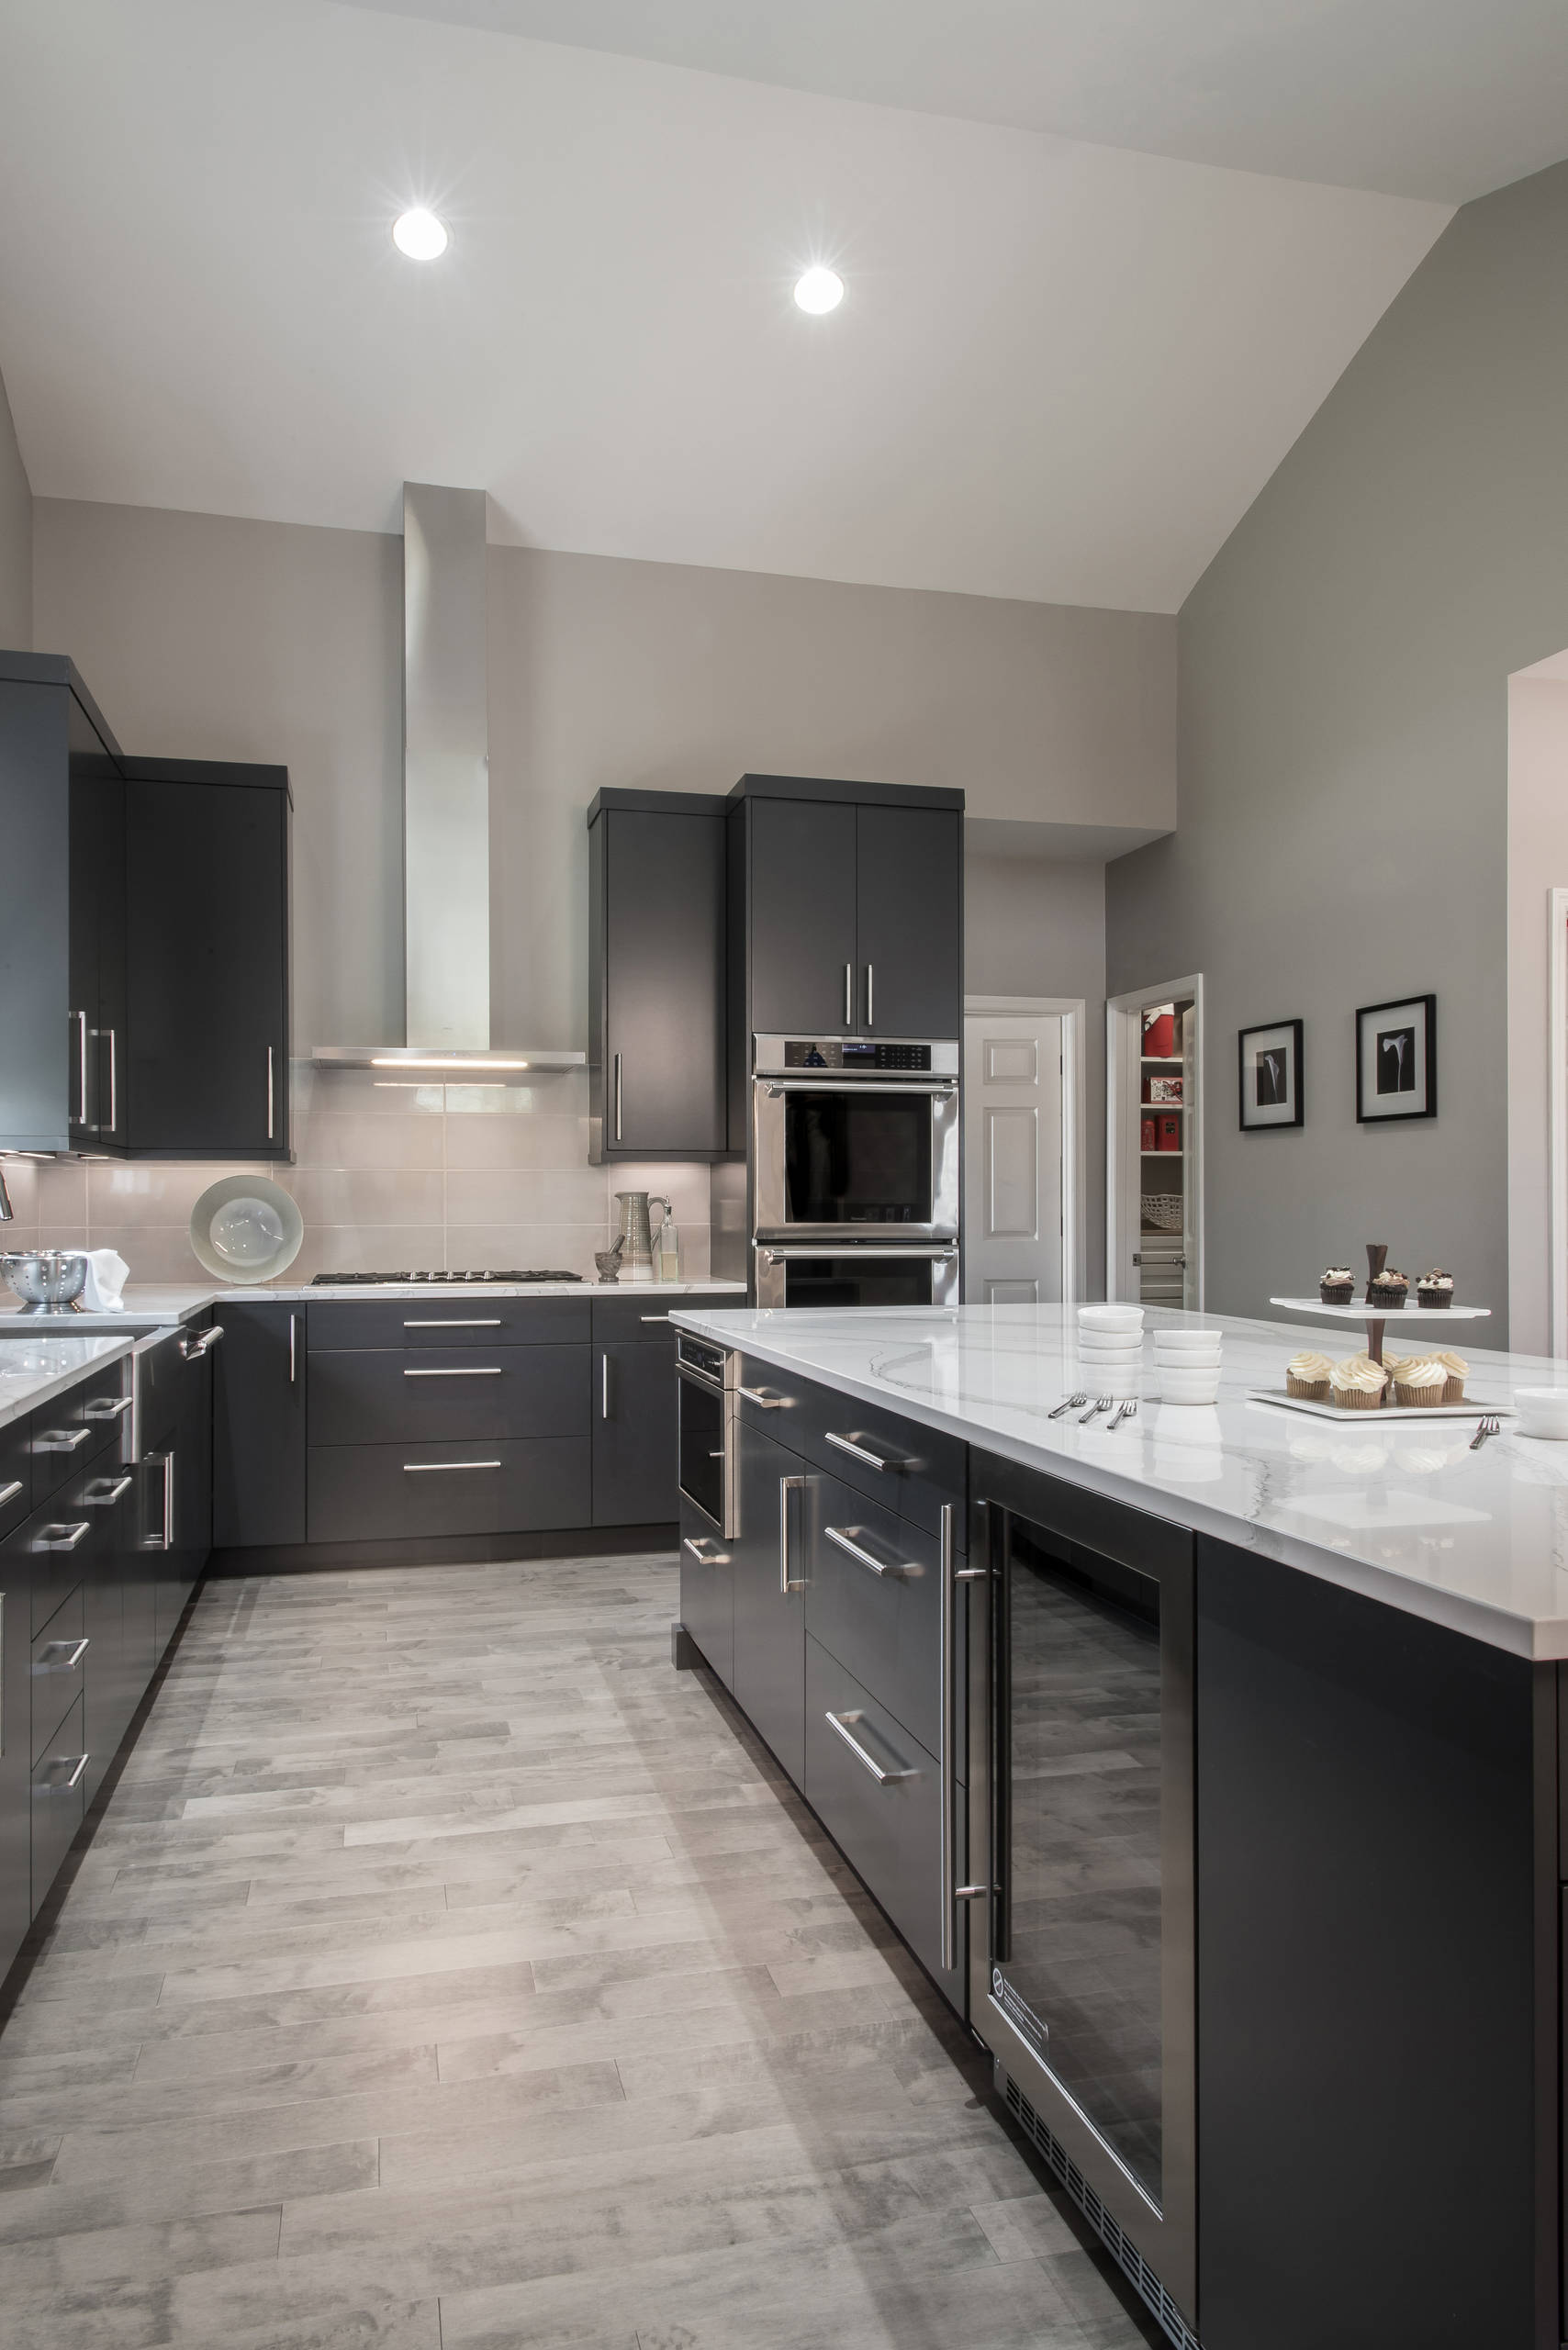 10 Beautiful Modern Gray Kitchen Pictures & Ideas - January, 10